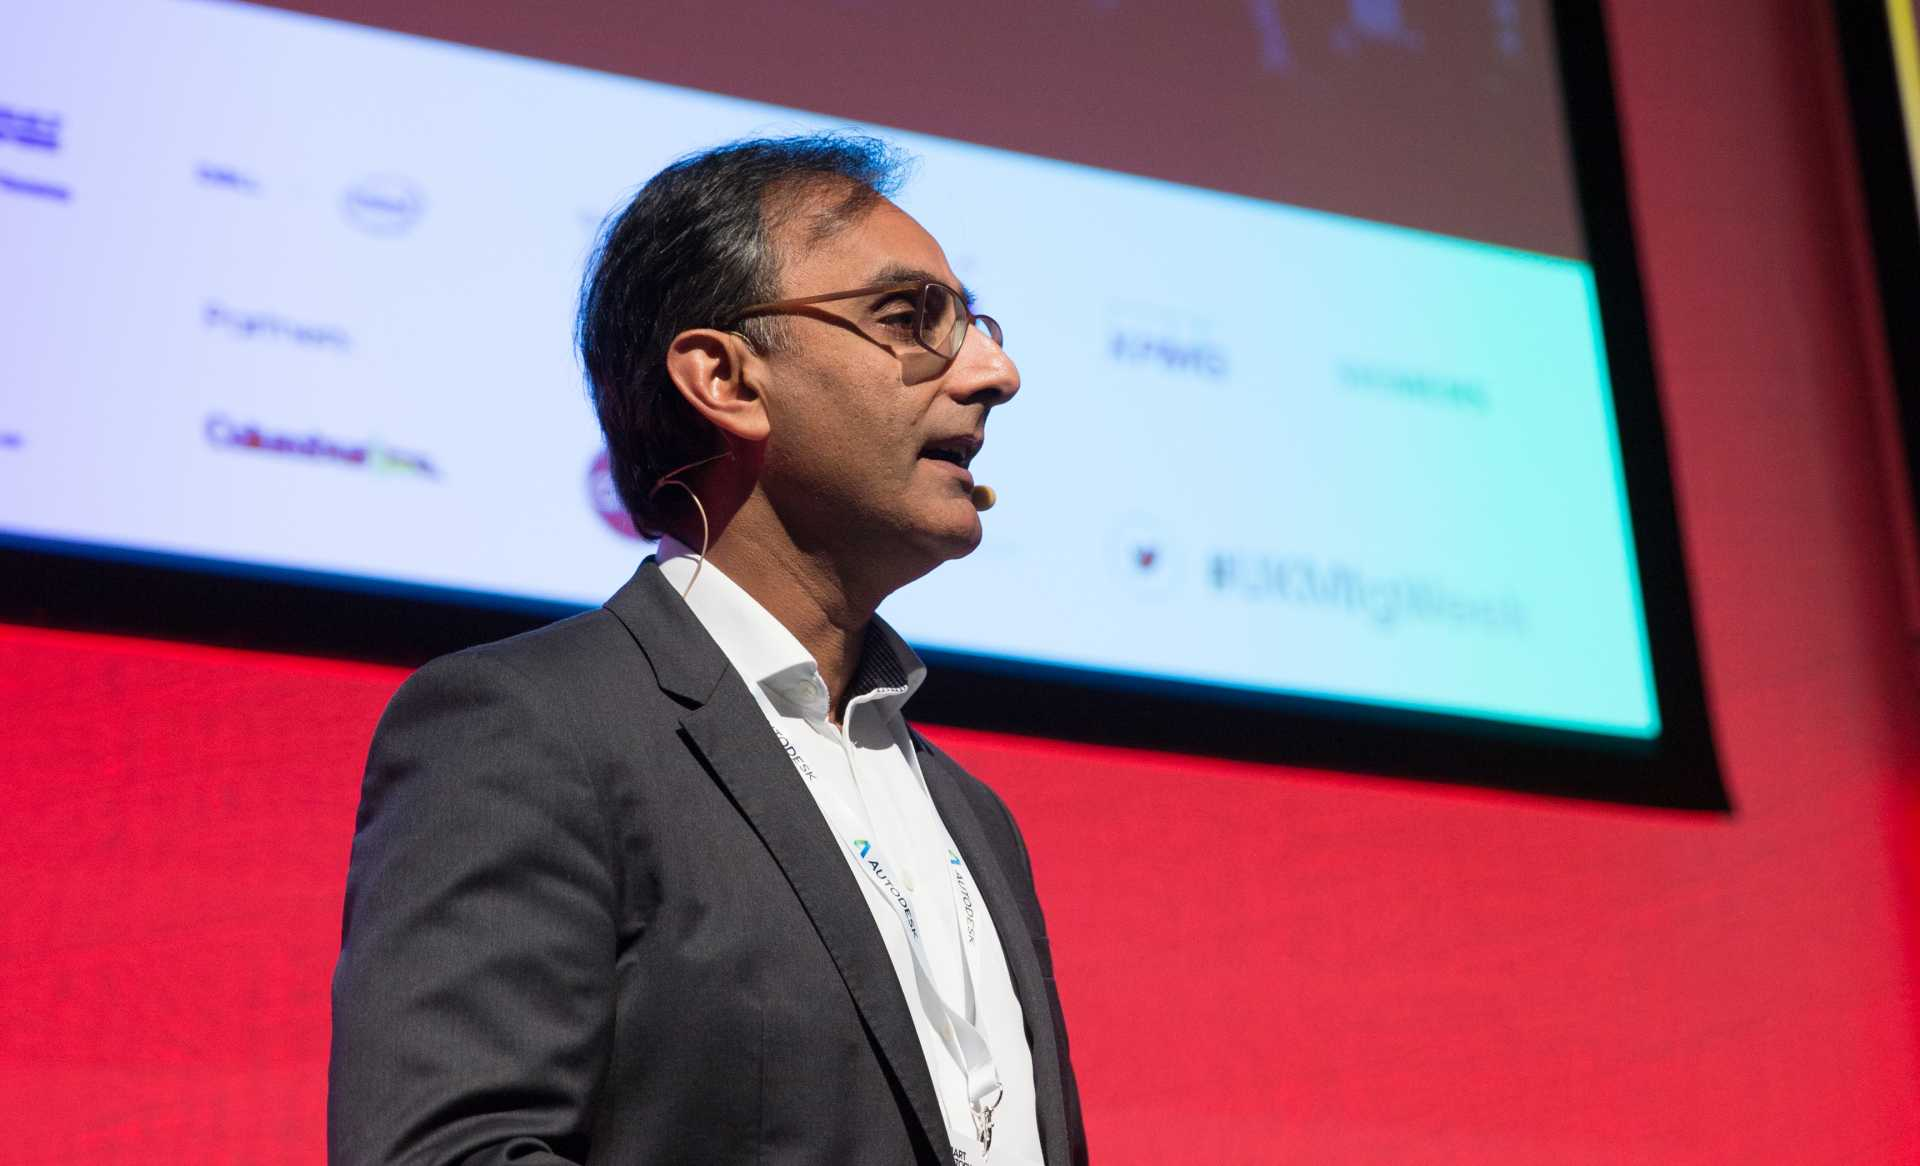 Asif Moghal, manufacturing industry manager at Autodesk, delivering his keynote at Leaders Conference 2017 – image courtesy of The Manufacturer.